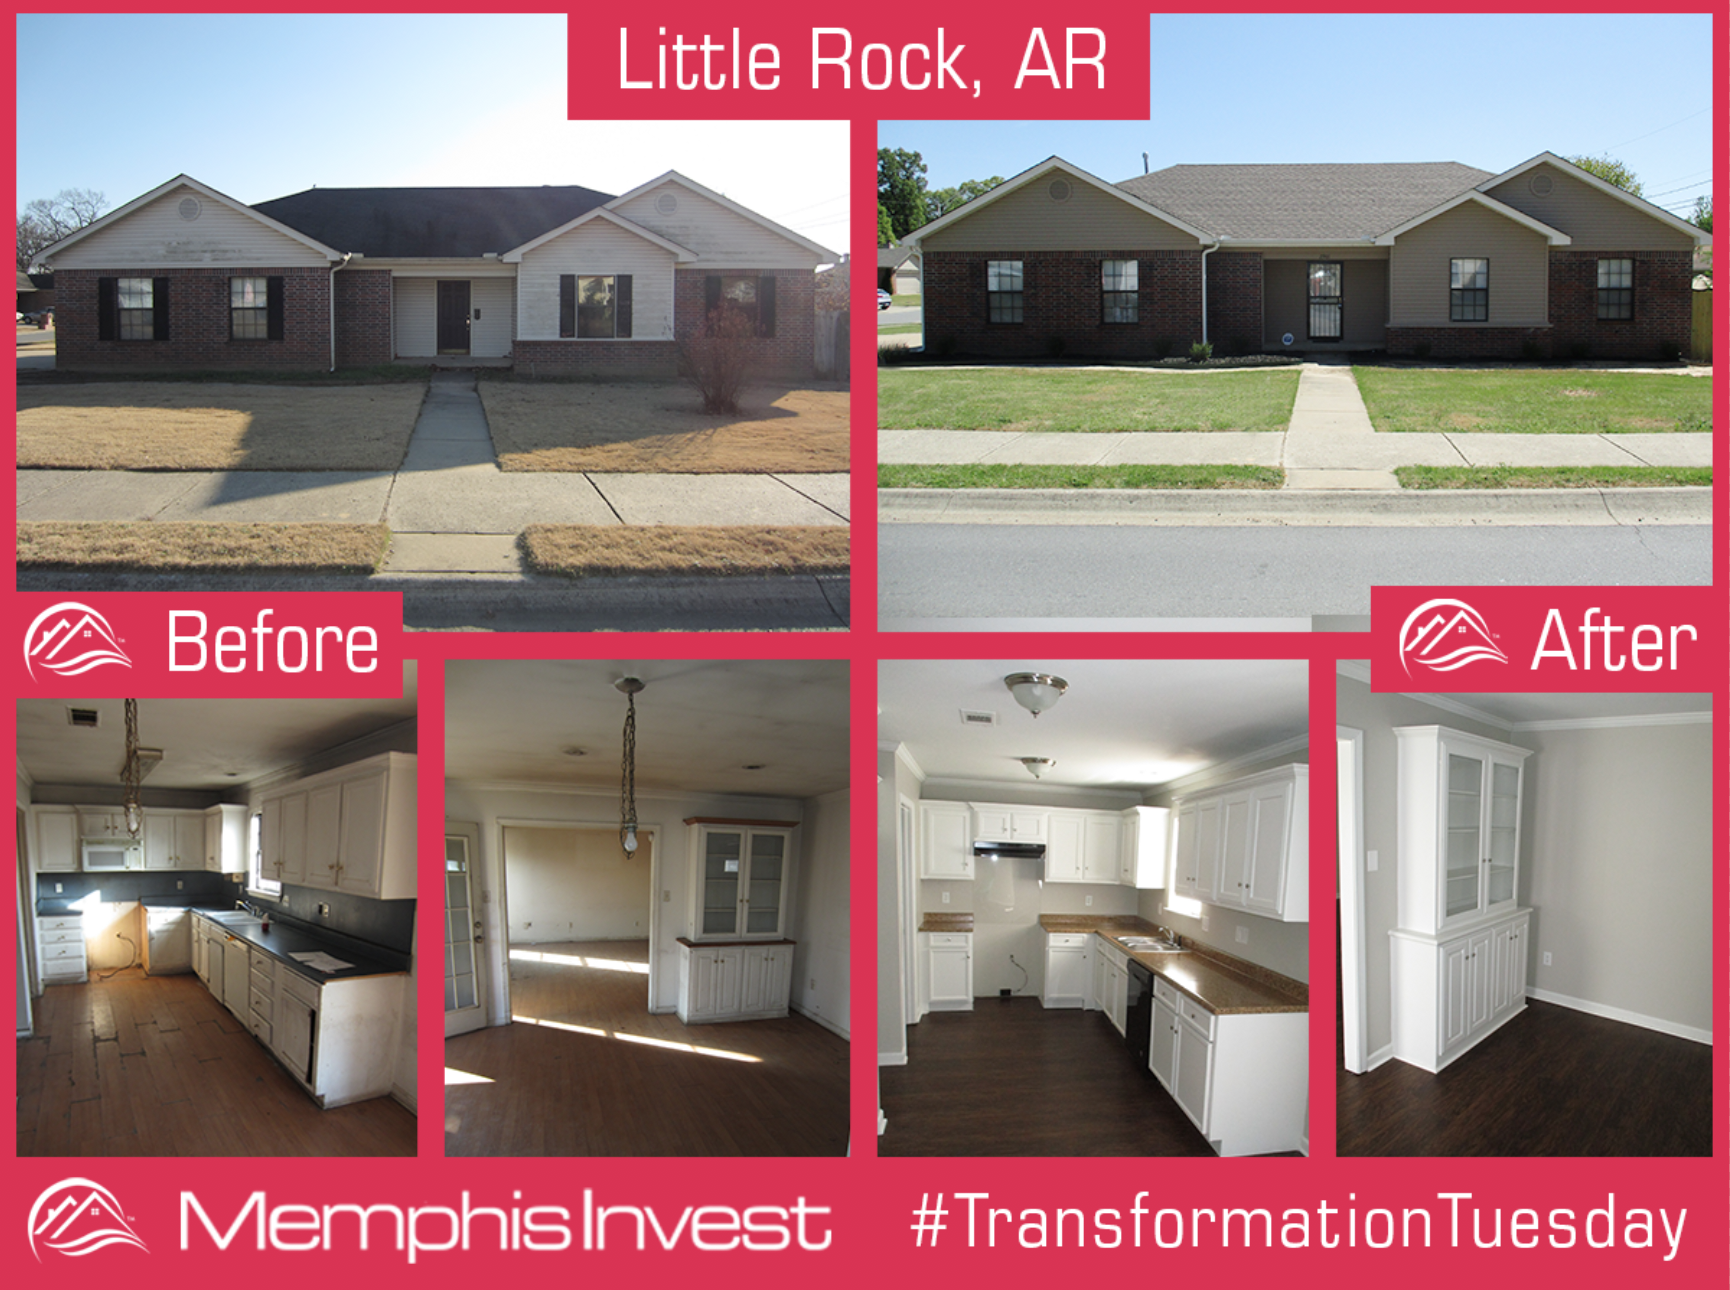 LittleRock-Renovation-Turnkey-1031